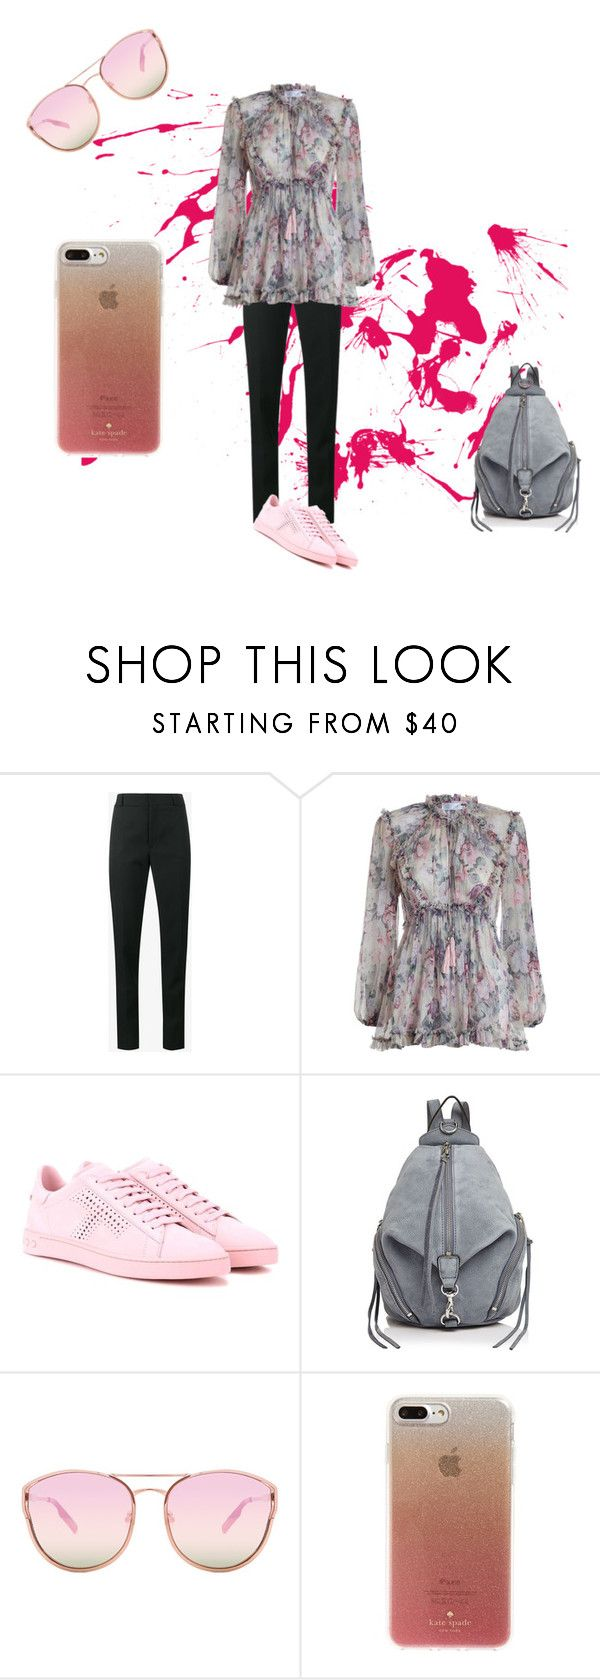 """""""Senza titolo #116"""" by mariapizzuto on Polyvore featuring moda, Yves Saint Laurent, Zimmermann, Tod's, Rebecca Minkoff, Quay e Kate Spade"""